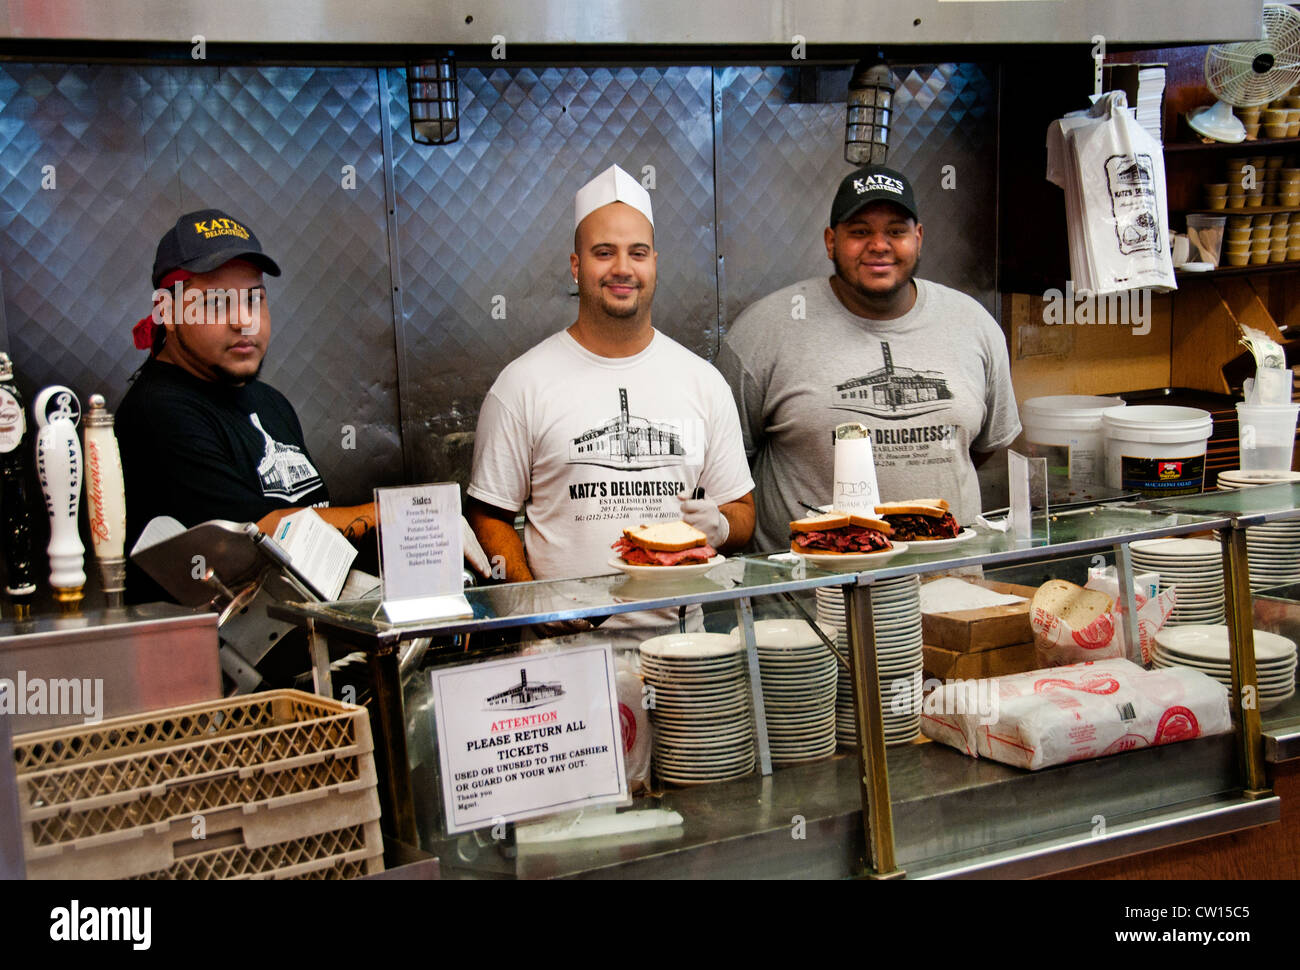 Restaurant Katz´s Jewish pastrami delicatessen deli diner New York City Manhattan  Lower East Side - Stock Image